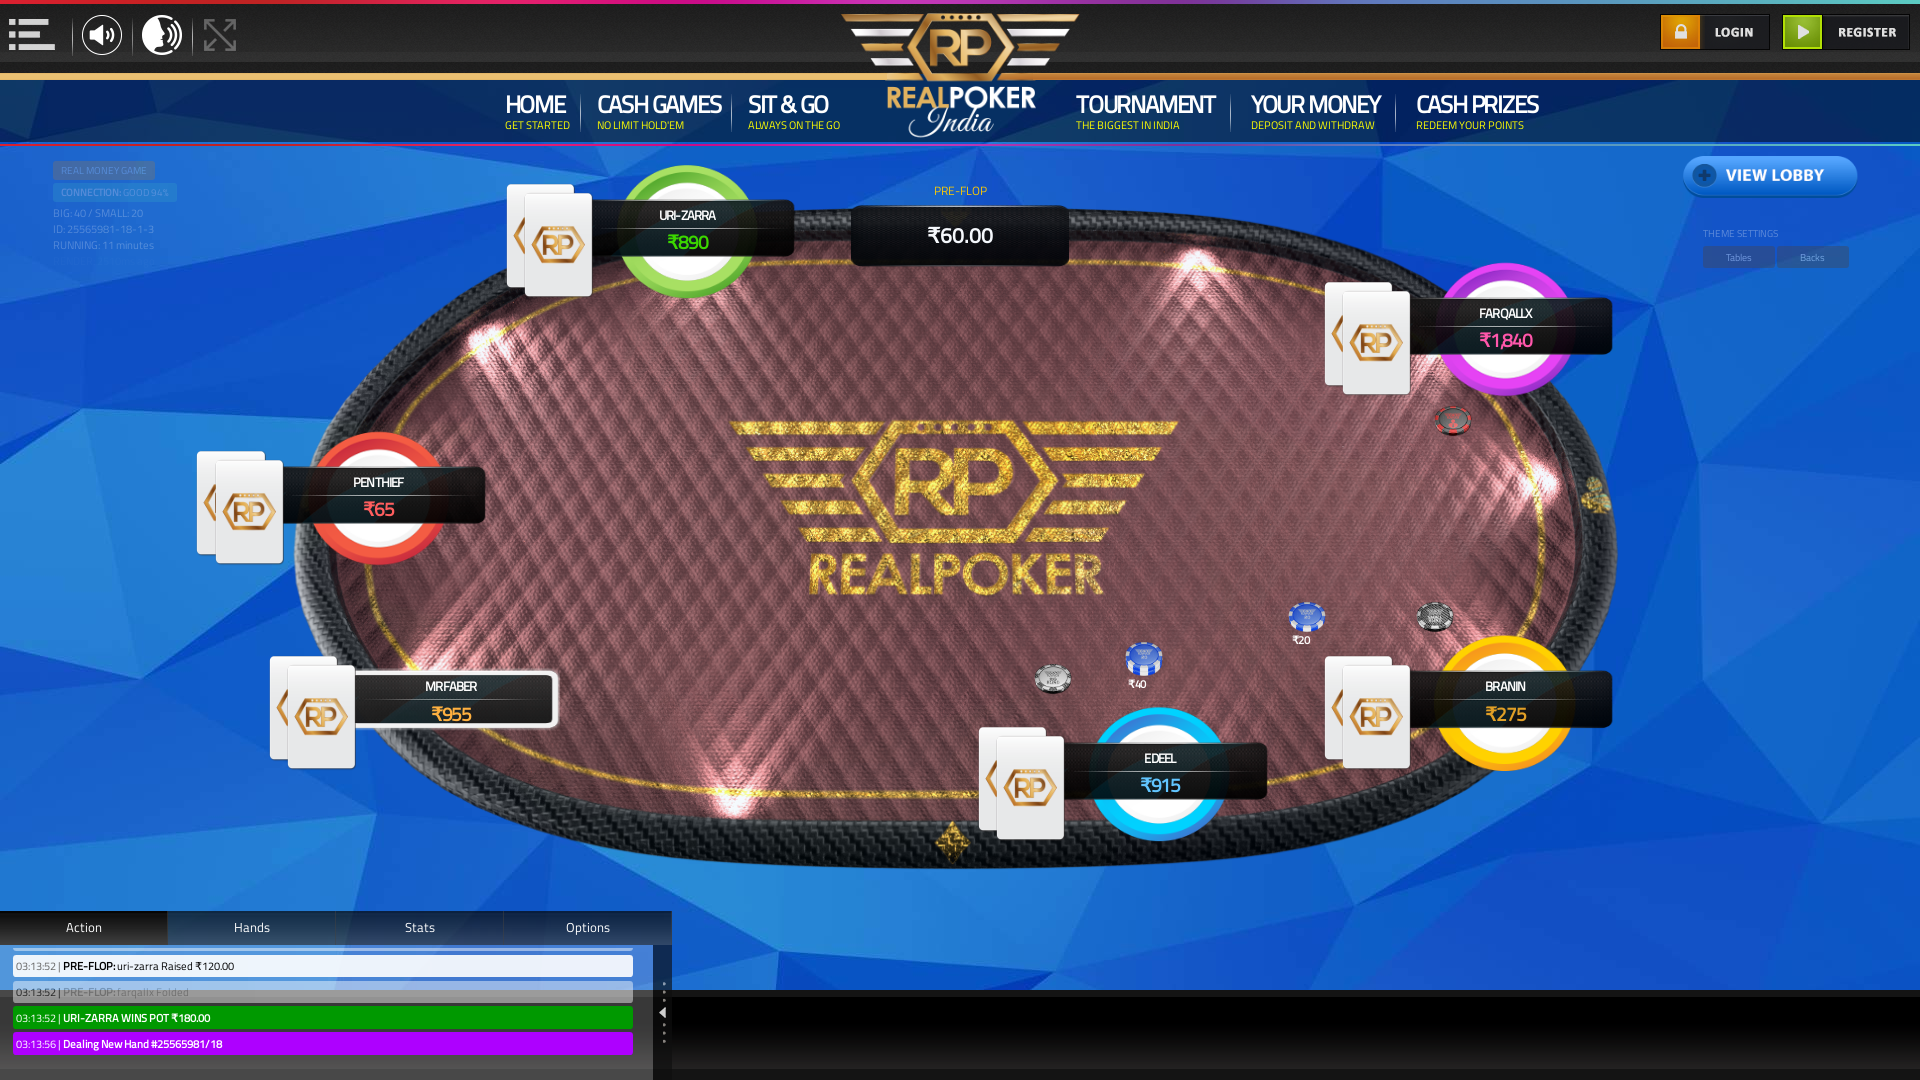 Mangaluru texas holdem poker table on a 10 player table in the 10th minute of the match